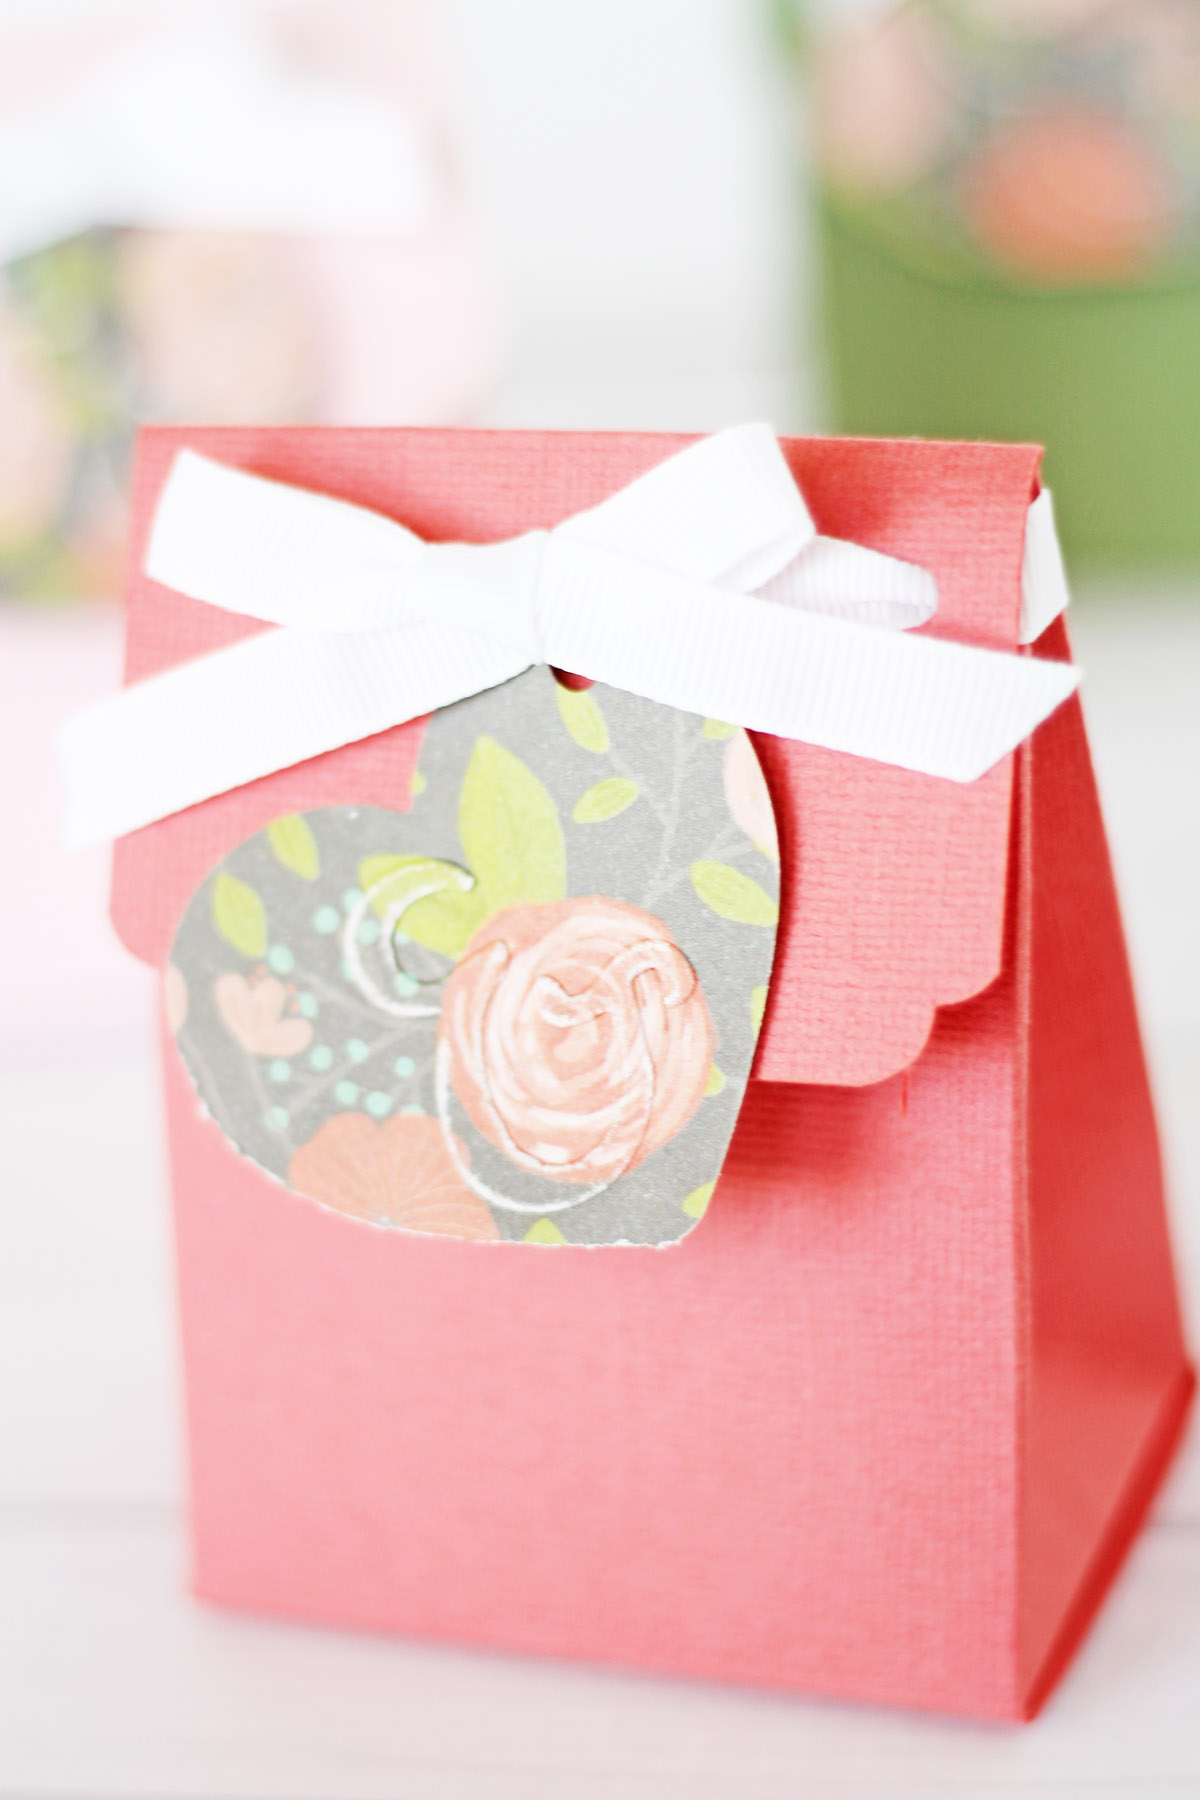 DIY Wedding Favor Boxes | We R Memory Keepers Blog